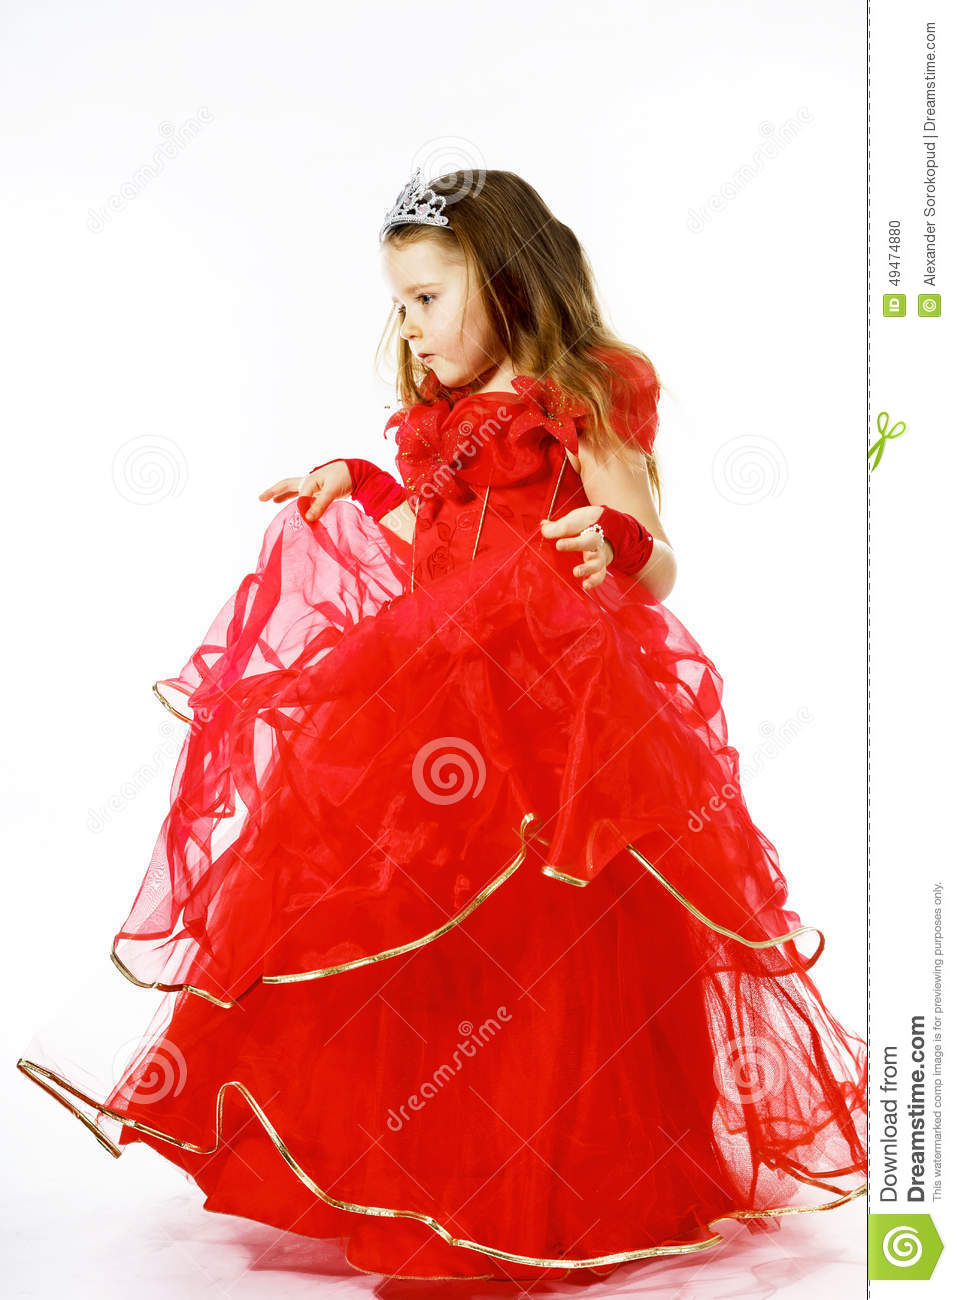 ea181f18d19a Cute Little Princess Dressed In Red With Crown On Her Head Posi ...